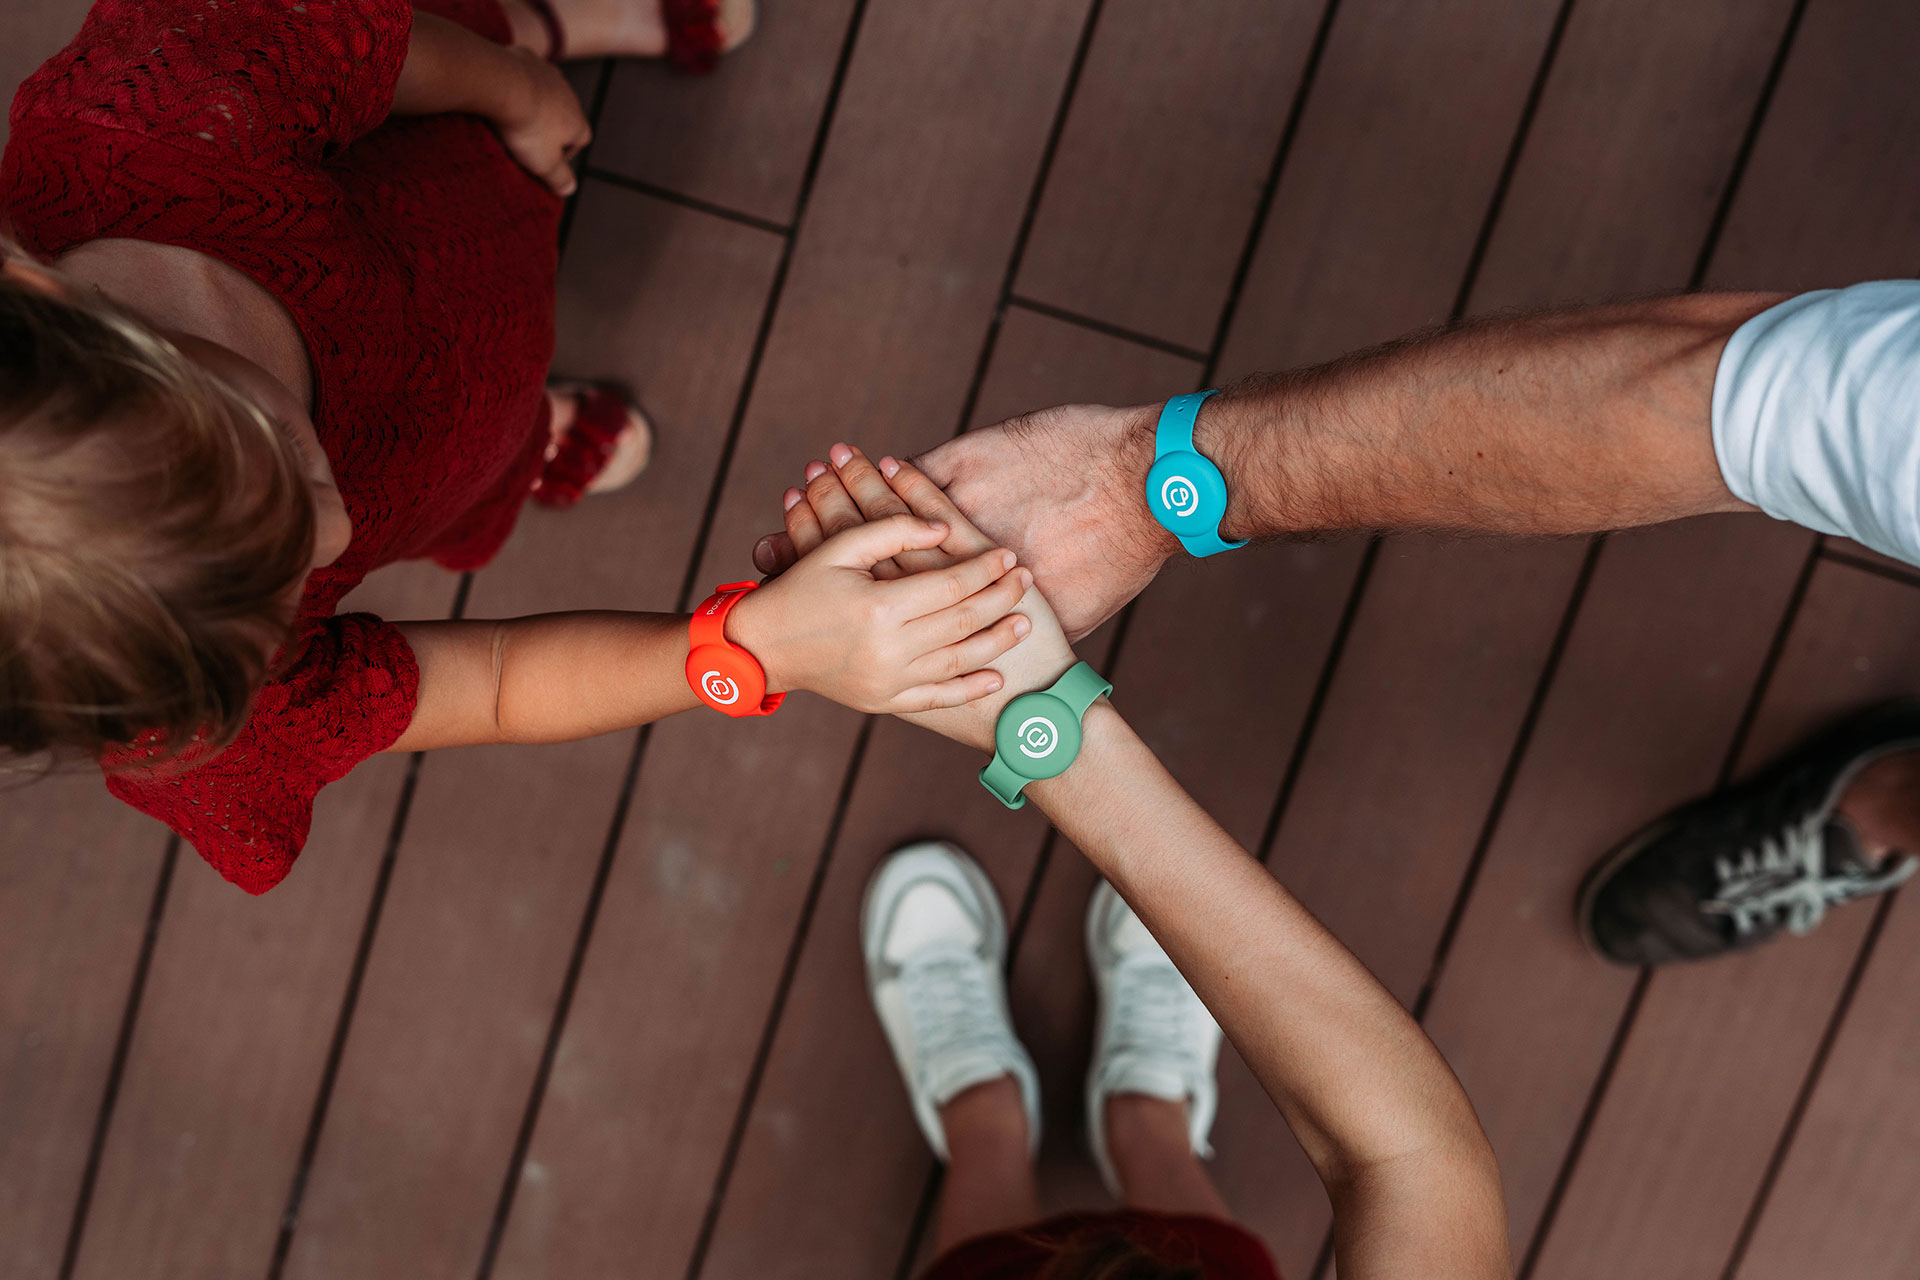 family hands together pouchpass temperature monitoring wristband